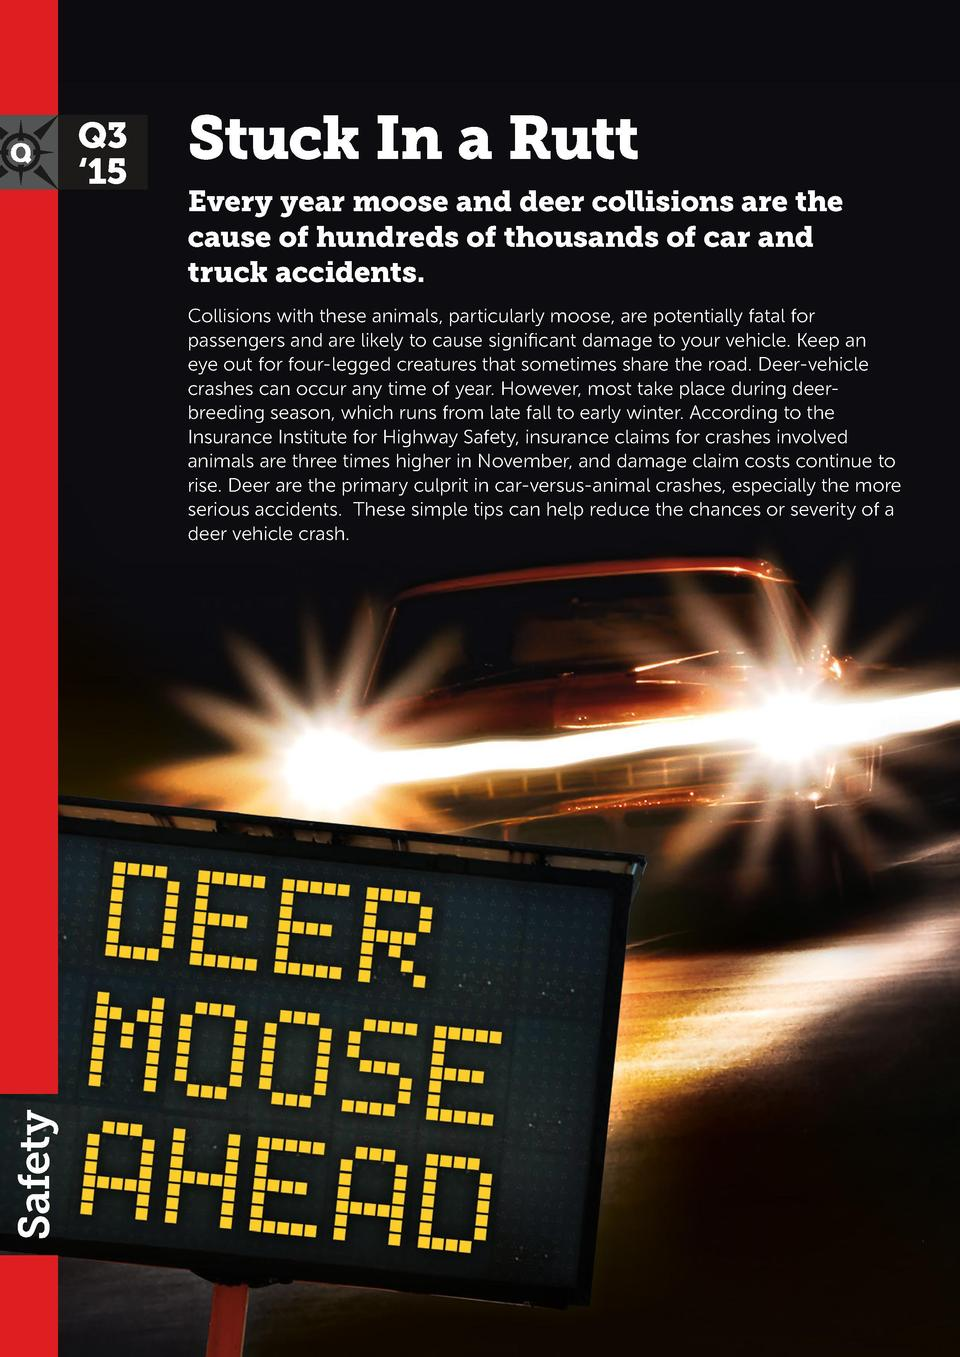 Q3    15  Stuck In a Rutt Every year moose and deer collisions are the cause of hundreds of thousands of car and truck acc...